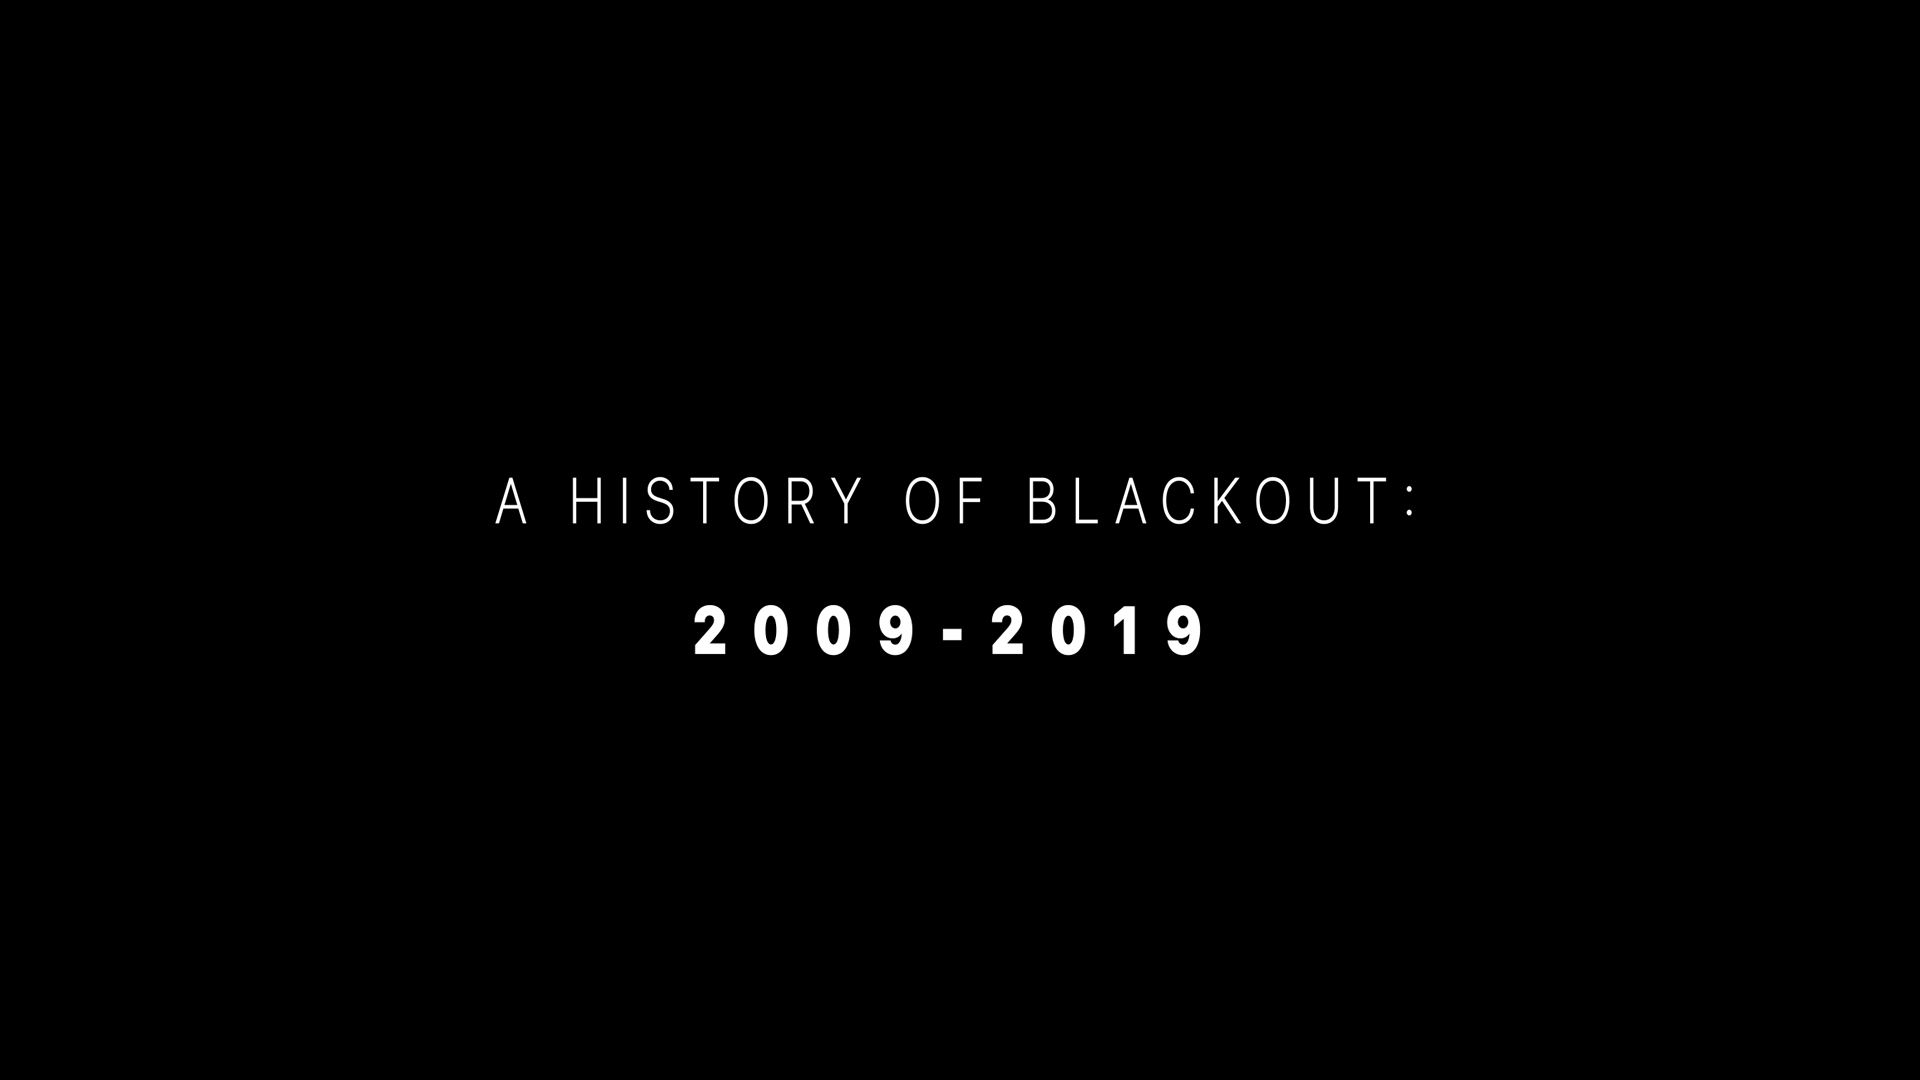 History of Blackout